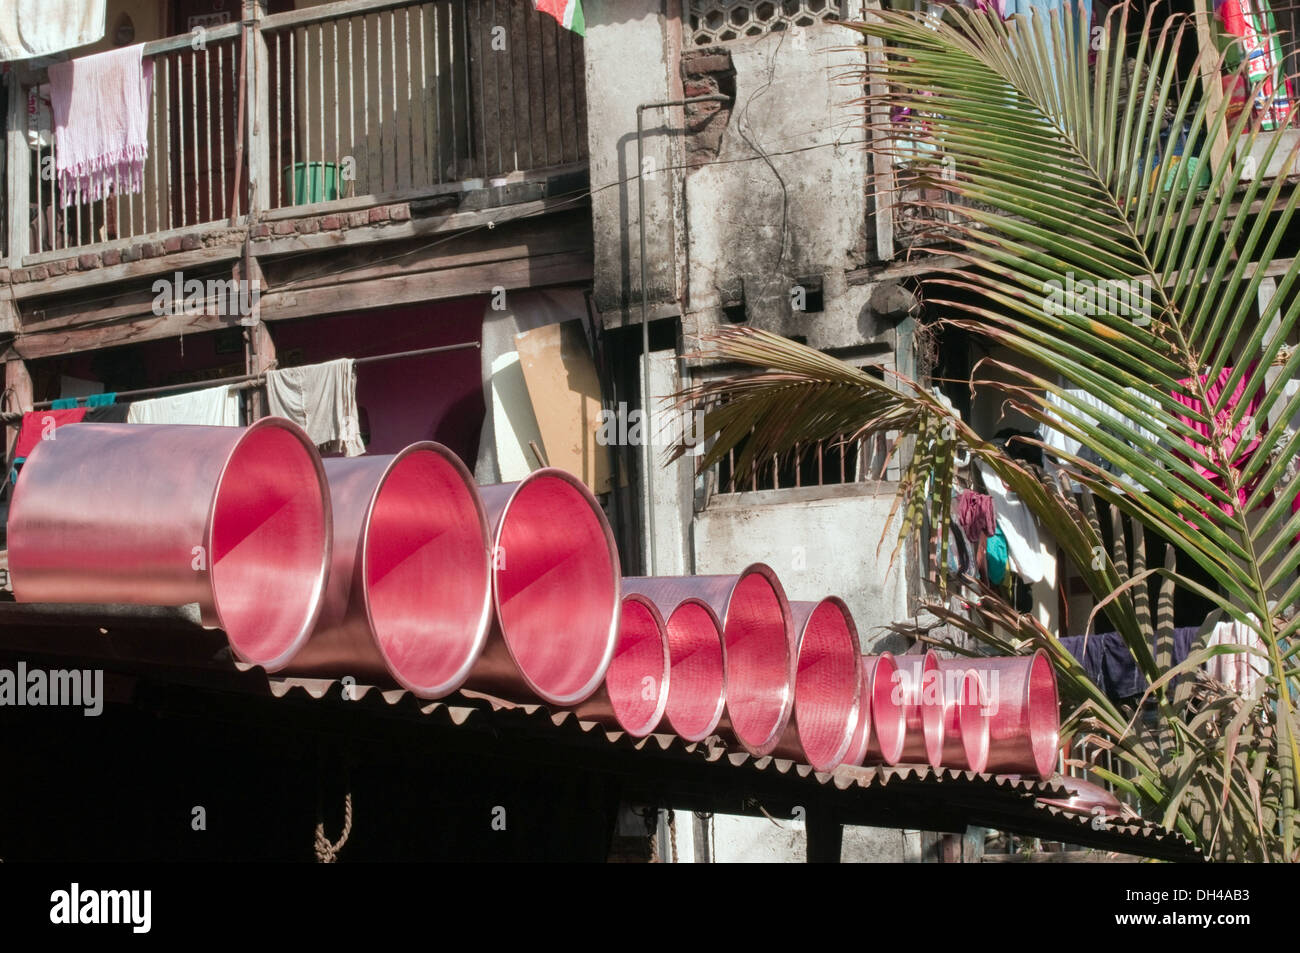 Copper vessels arranged over roof for baking Pune Maharashtra India Asia Feb 2012 - Stock Image